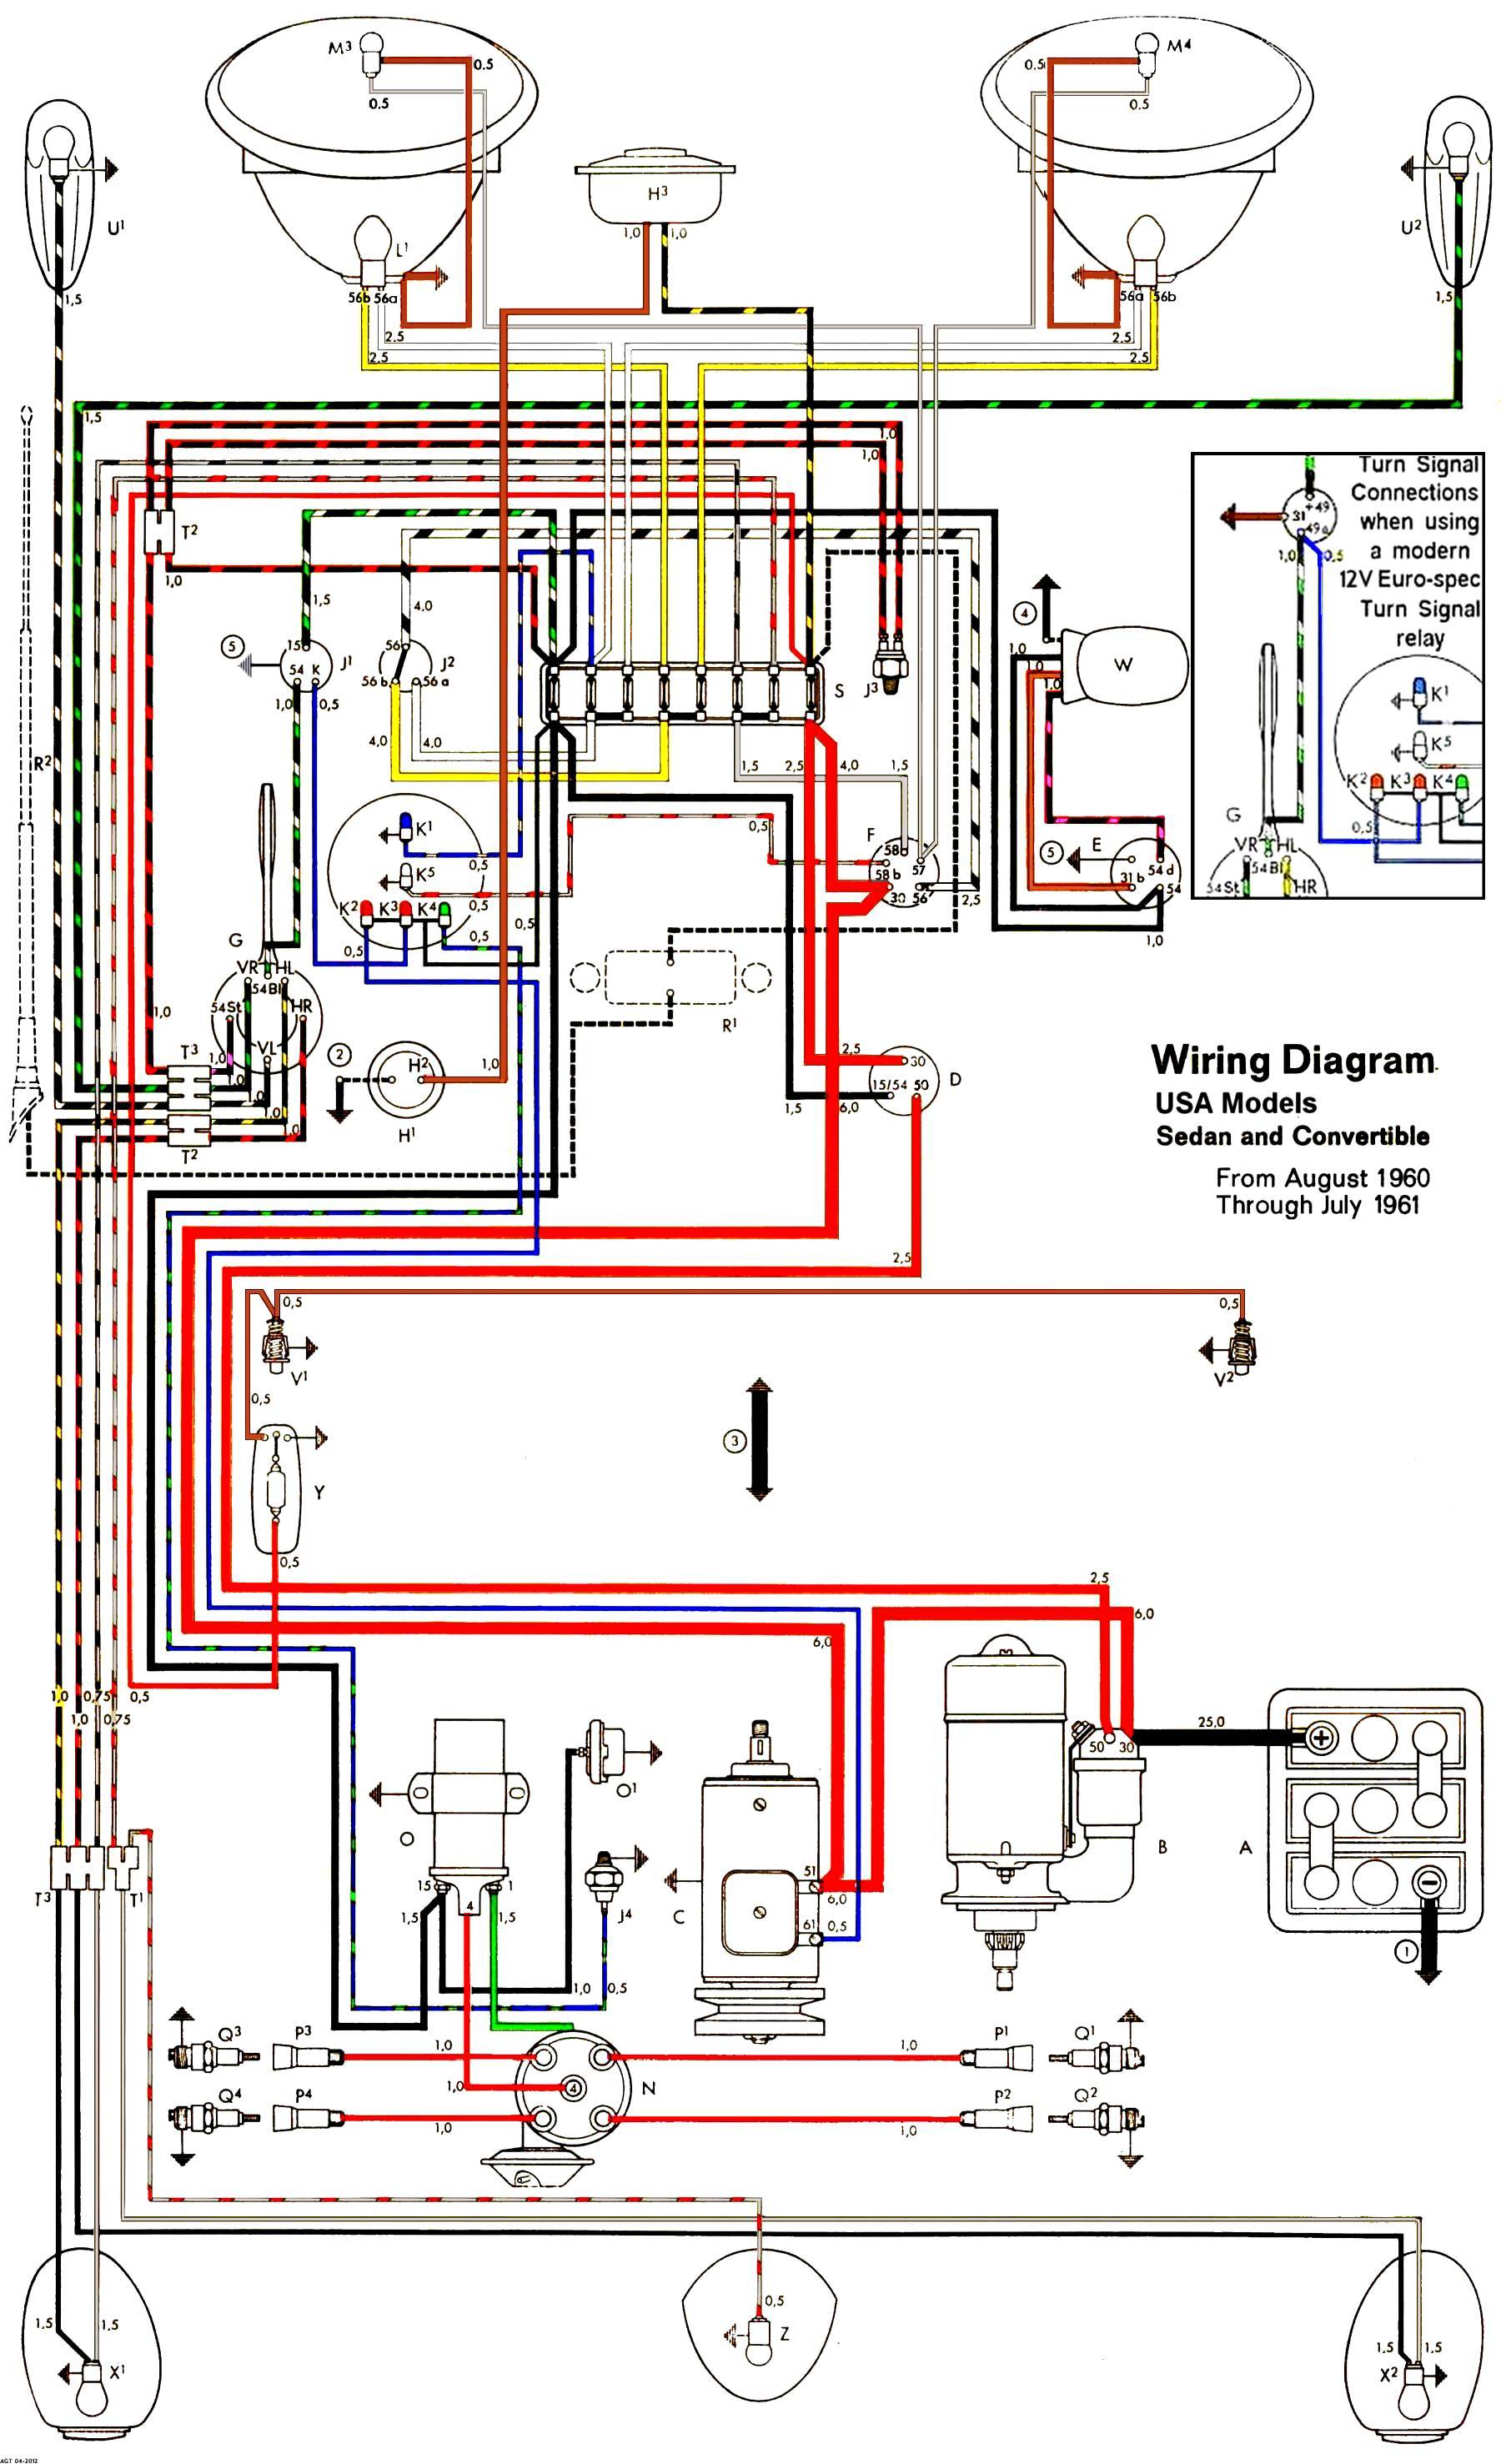 vw beetle wiring diagram 1990 ford ranger parts bug 1300 engine type 2